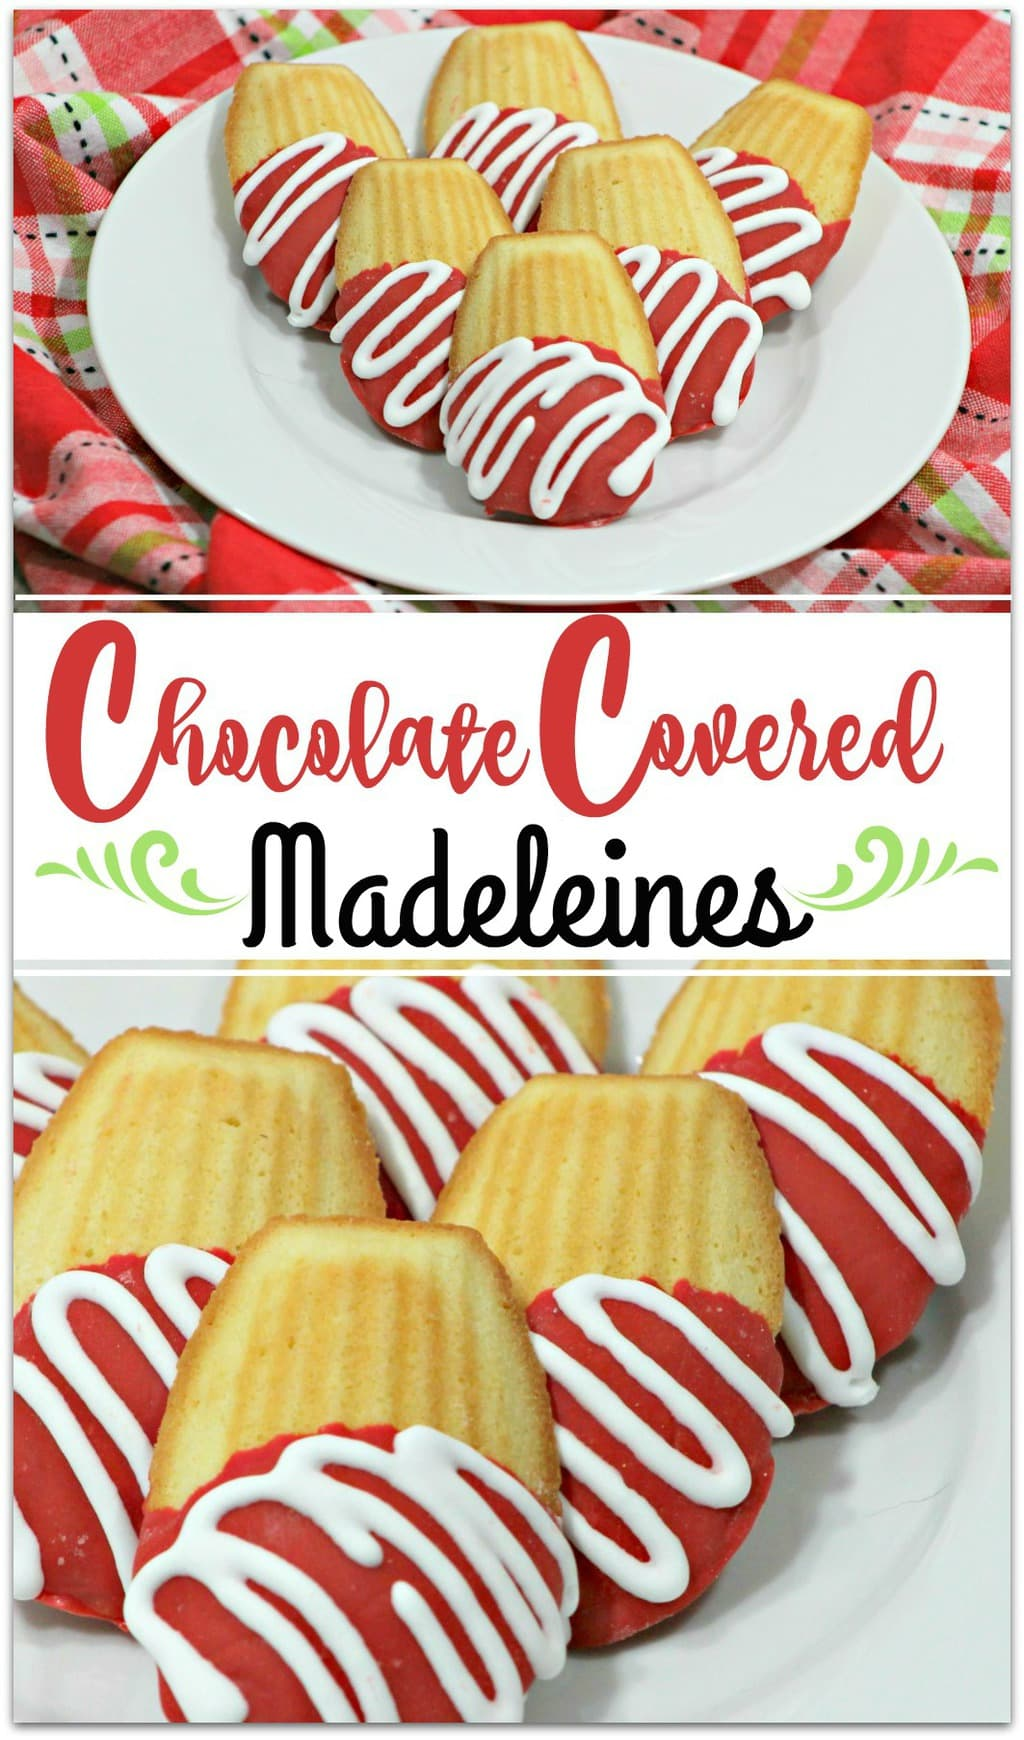 We love cookies around here, and these Chocolate Covered Madelines are not only delicious, they are so pretty! Make it the centerpiece on your kitchen table for Valentine's Day, or add them to a pretty Valentine's basket for your kids! Need a dessert for the classroom party? Everyone will love these cookies, and it's an easy recipe, too!